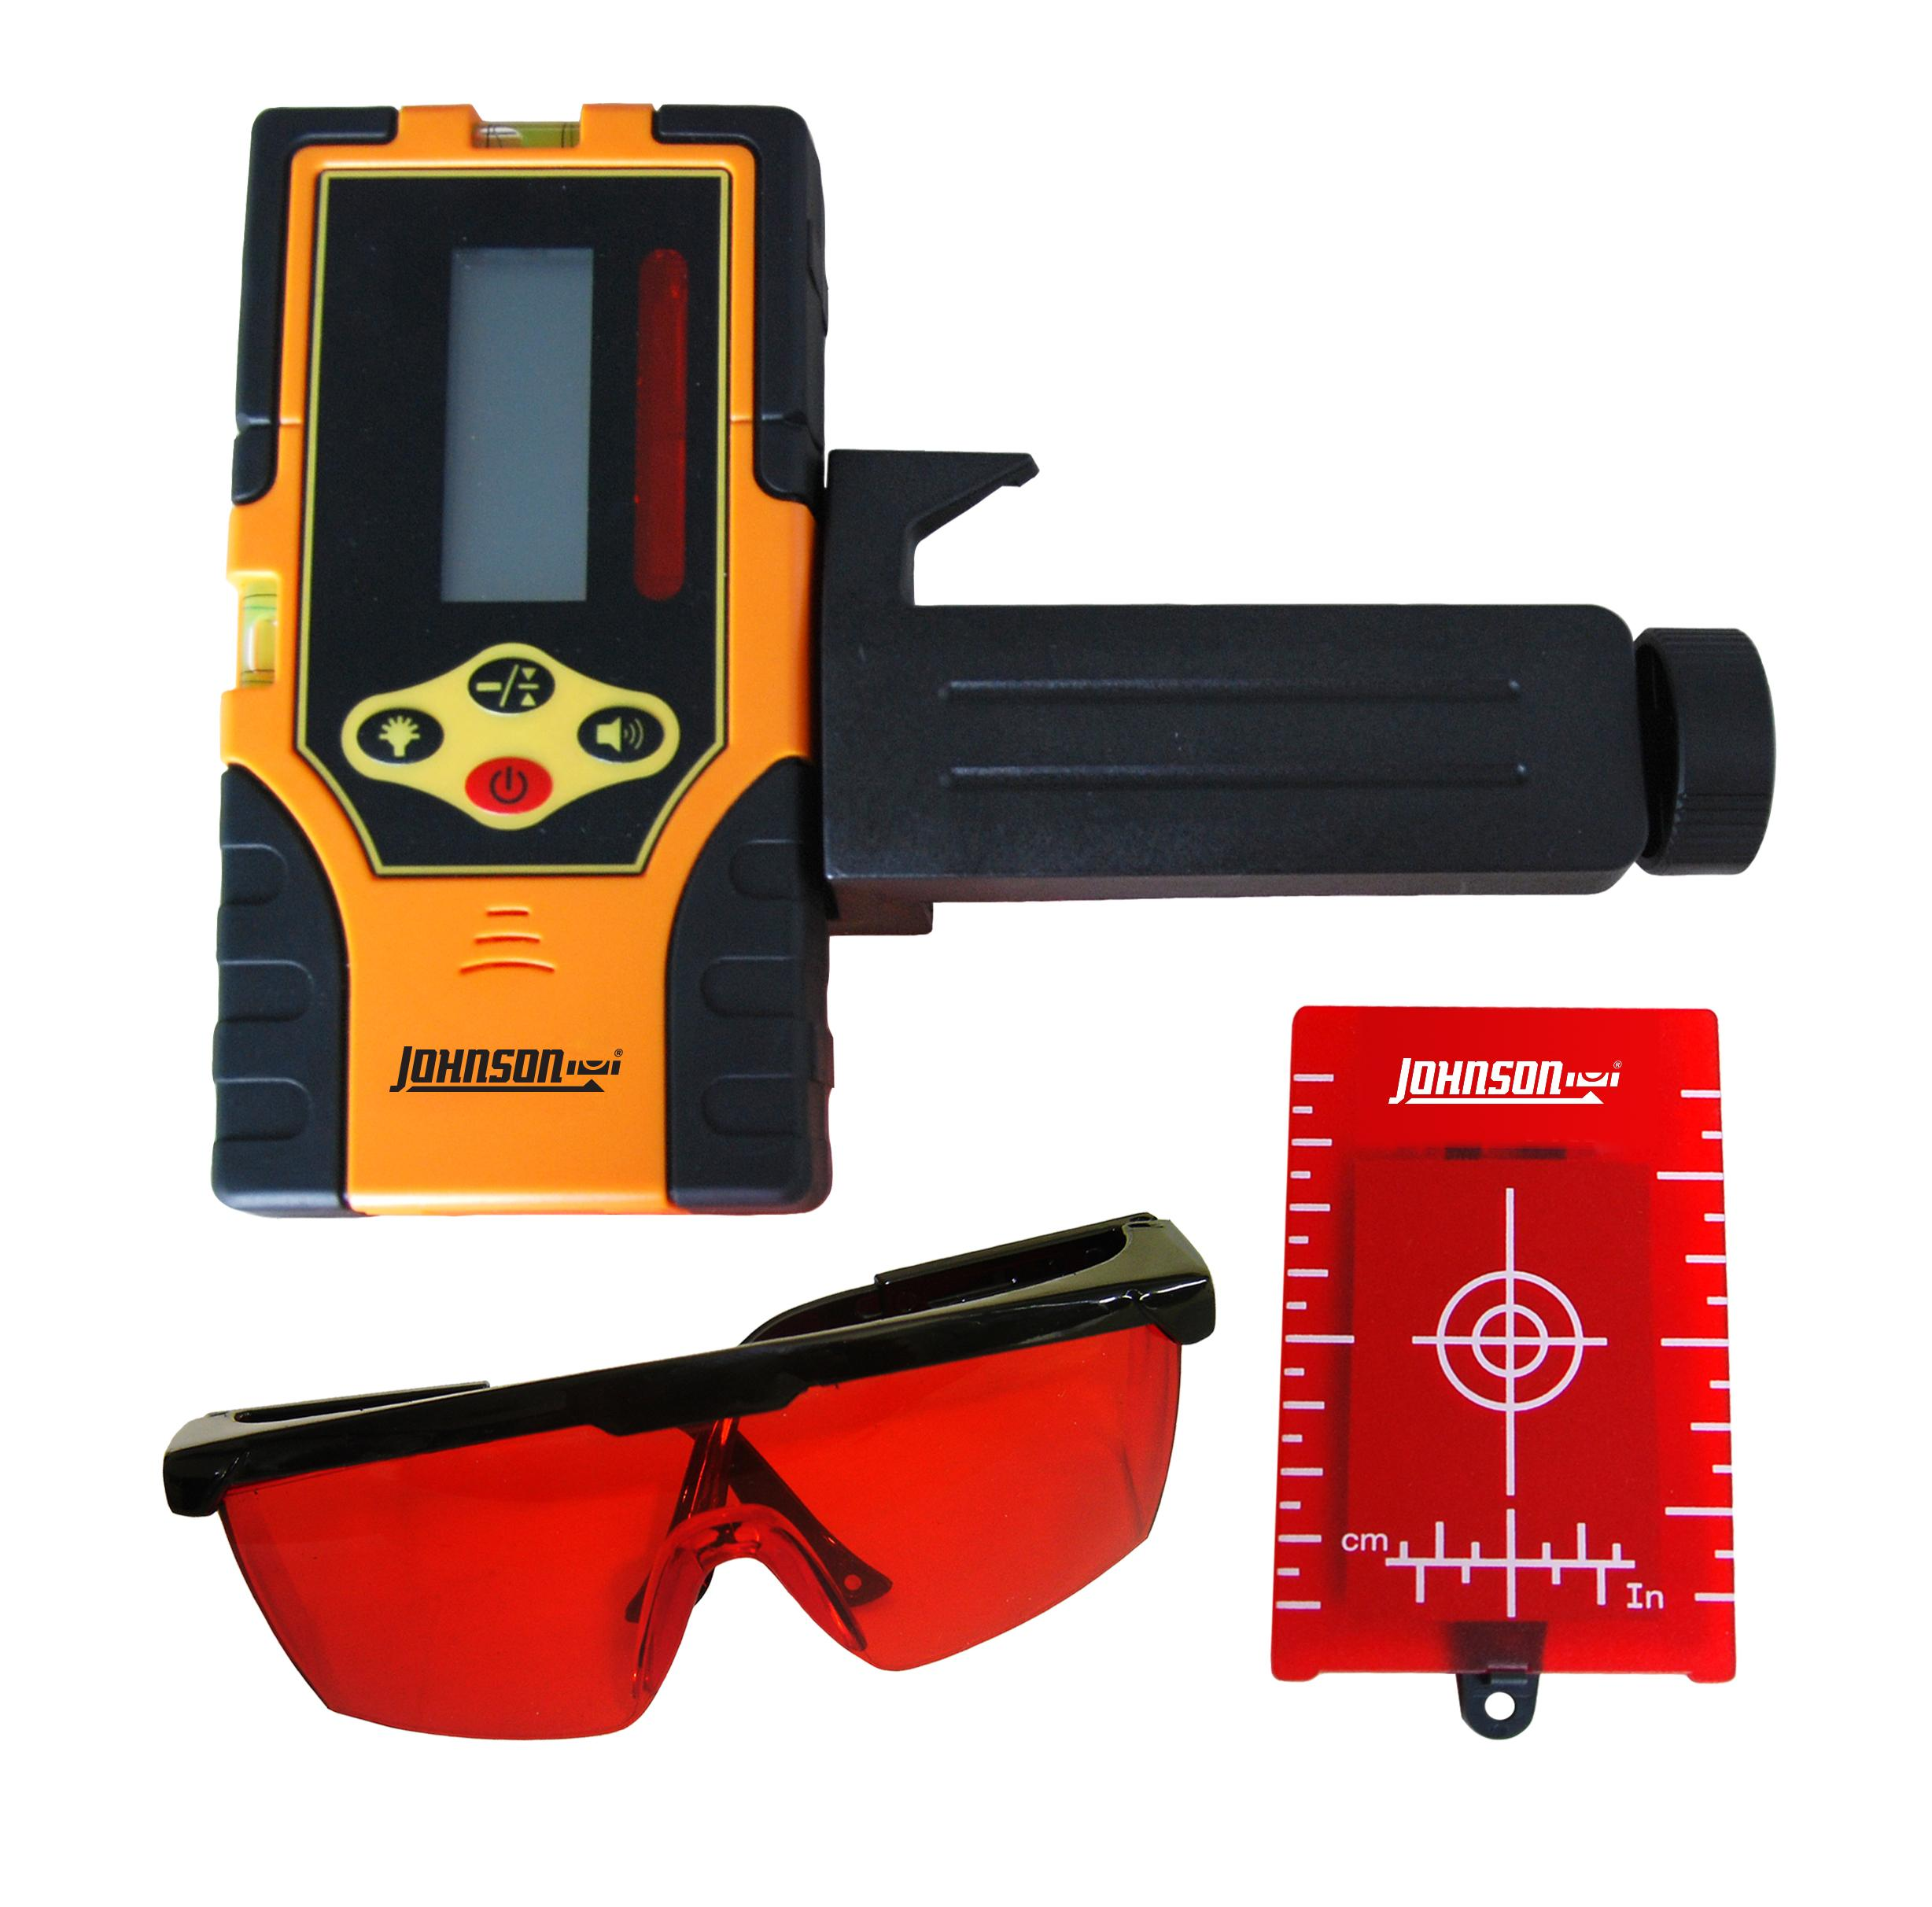 Model #40-6720 Detector with Laser Enhancement Glasses and Target